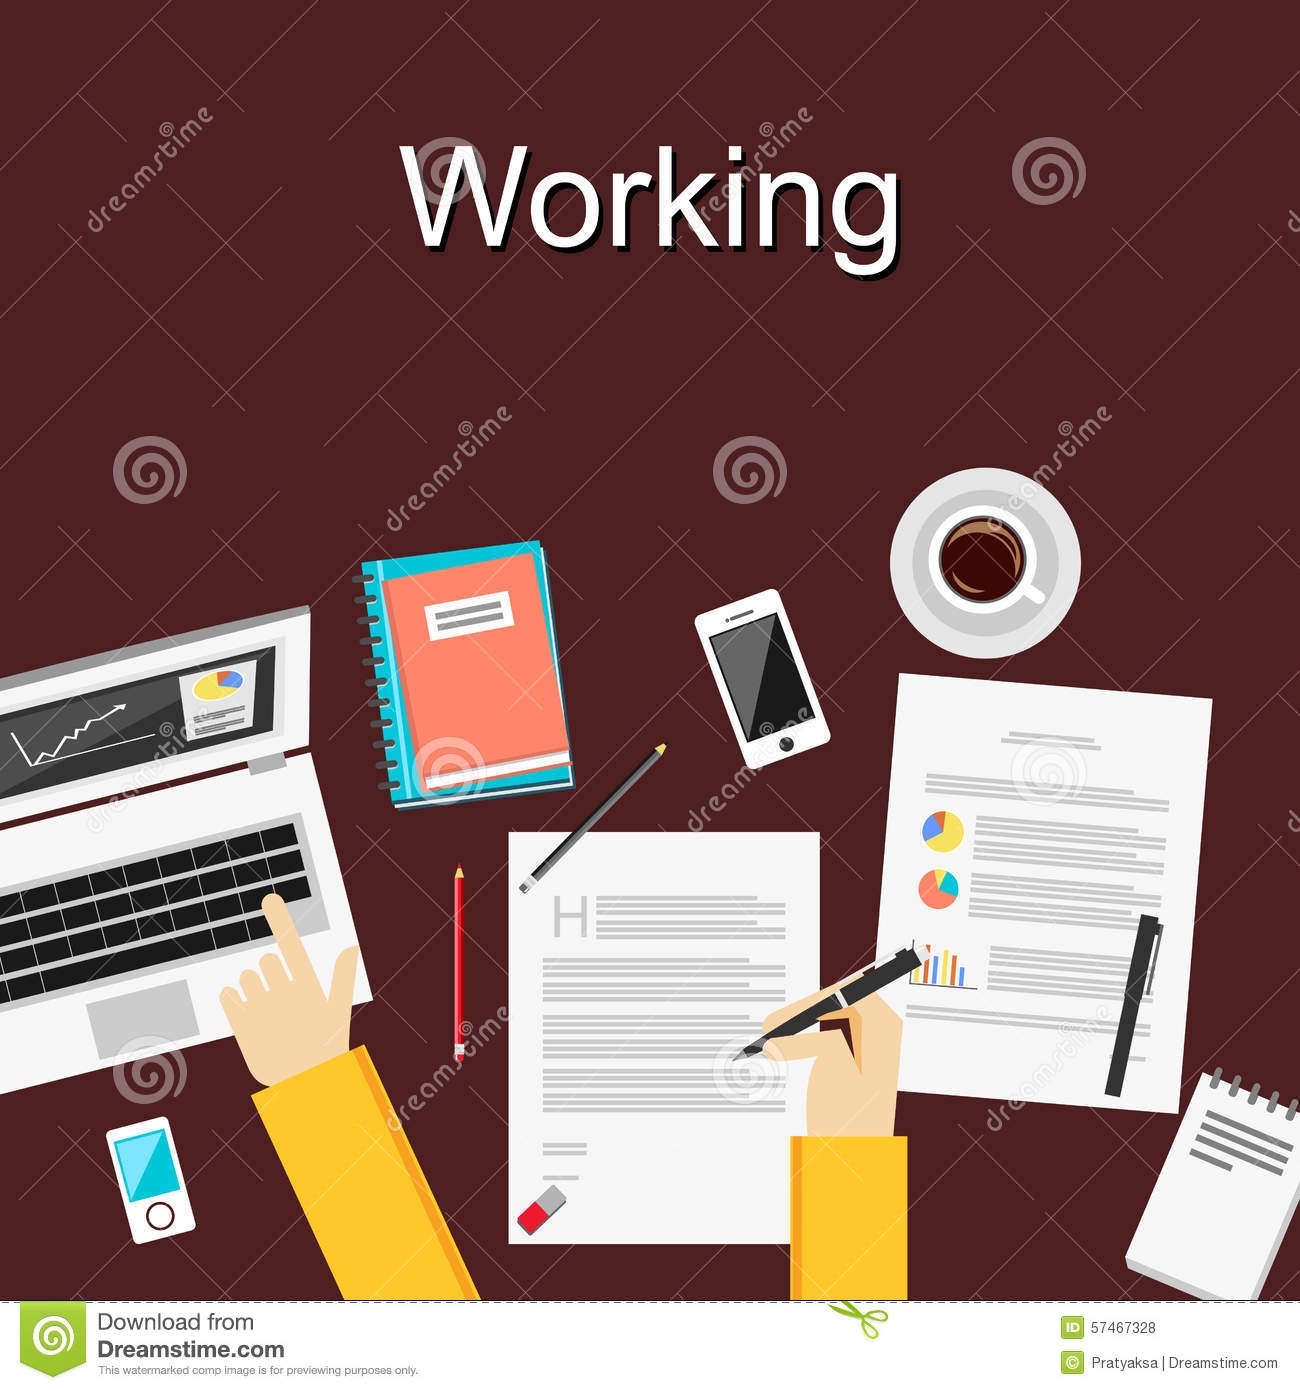 flat design illustration concepts for working study hard flat design illustration concepts for working study hard management career brainstorming